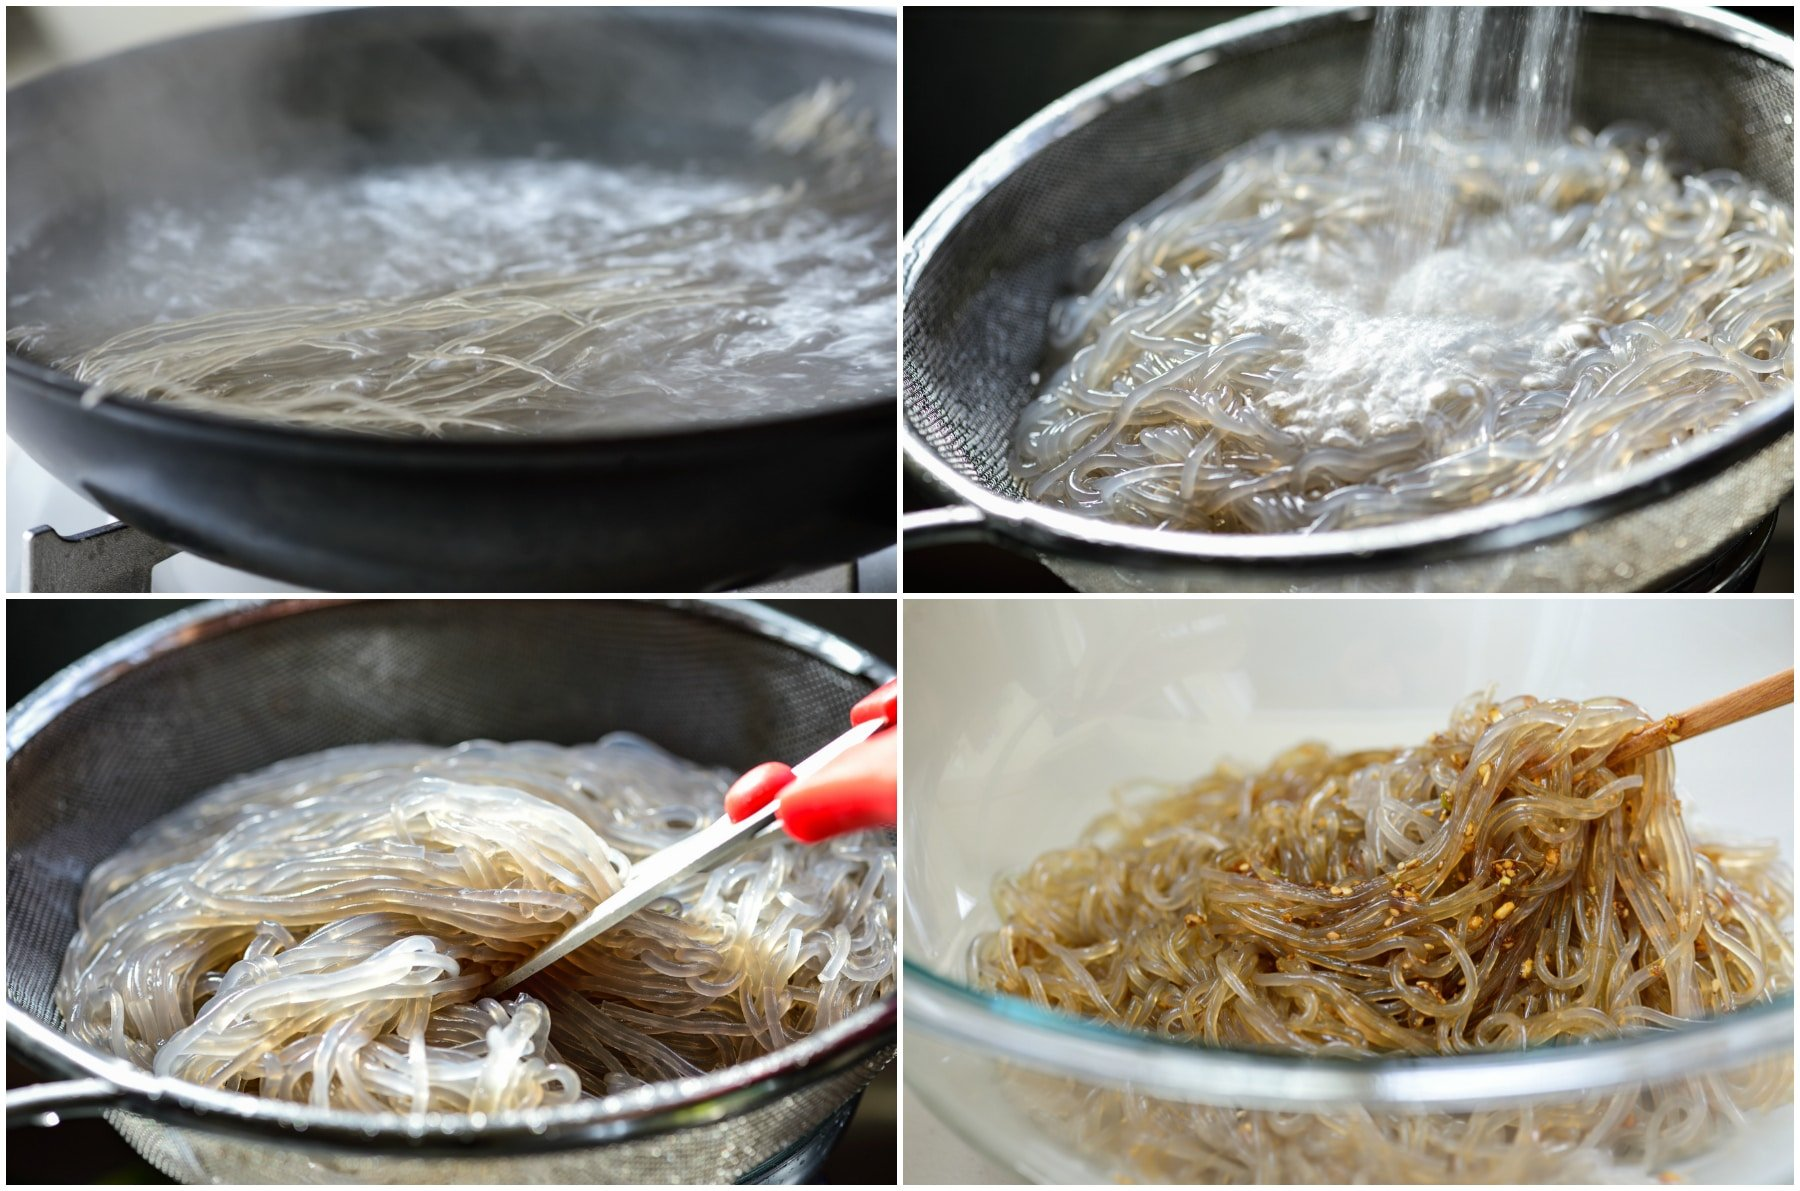 PicMonkey Collage - Japchae (Stir-Fried Starch Noodles with Beef and Vegetables)